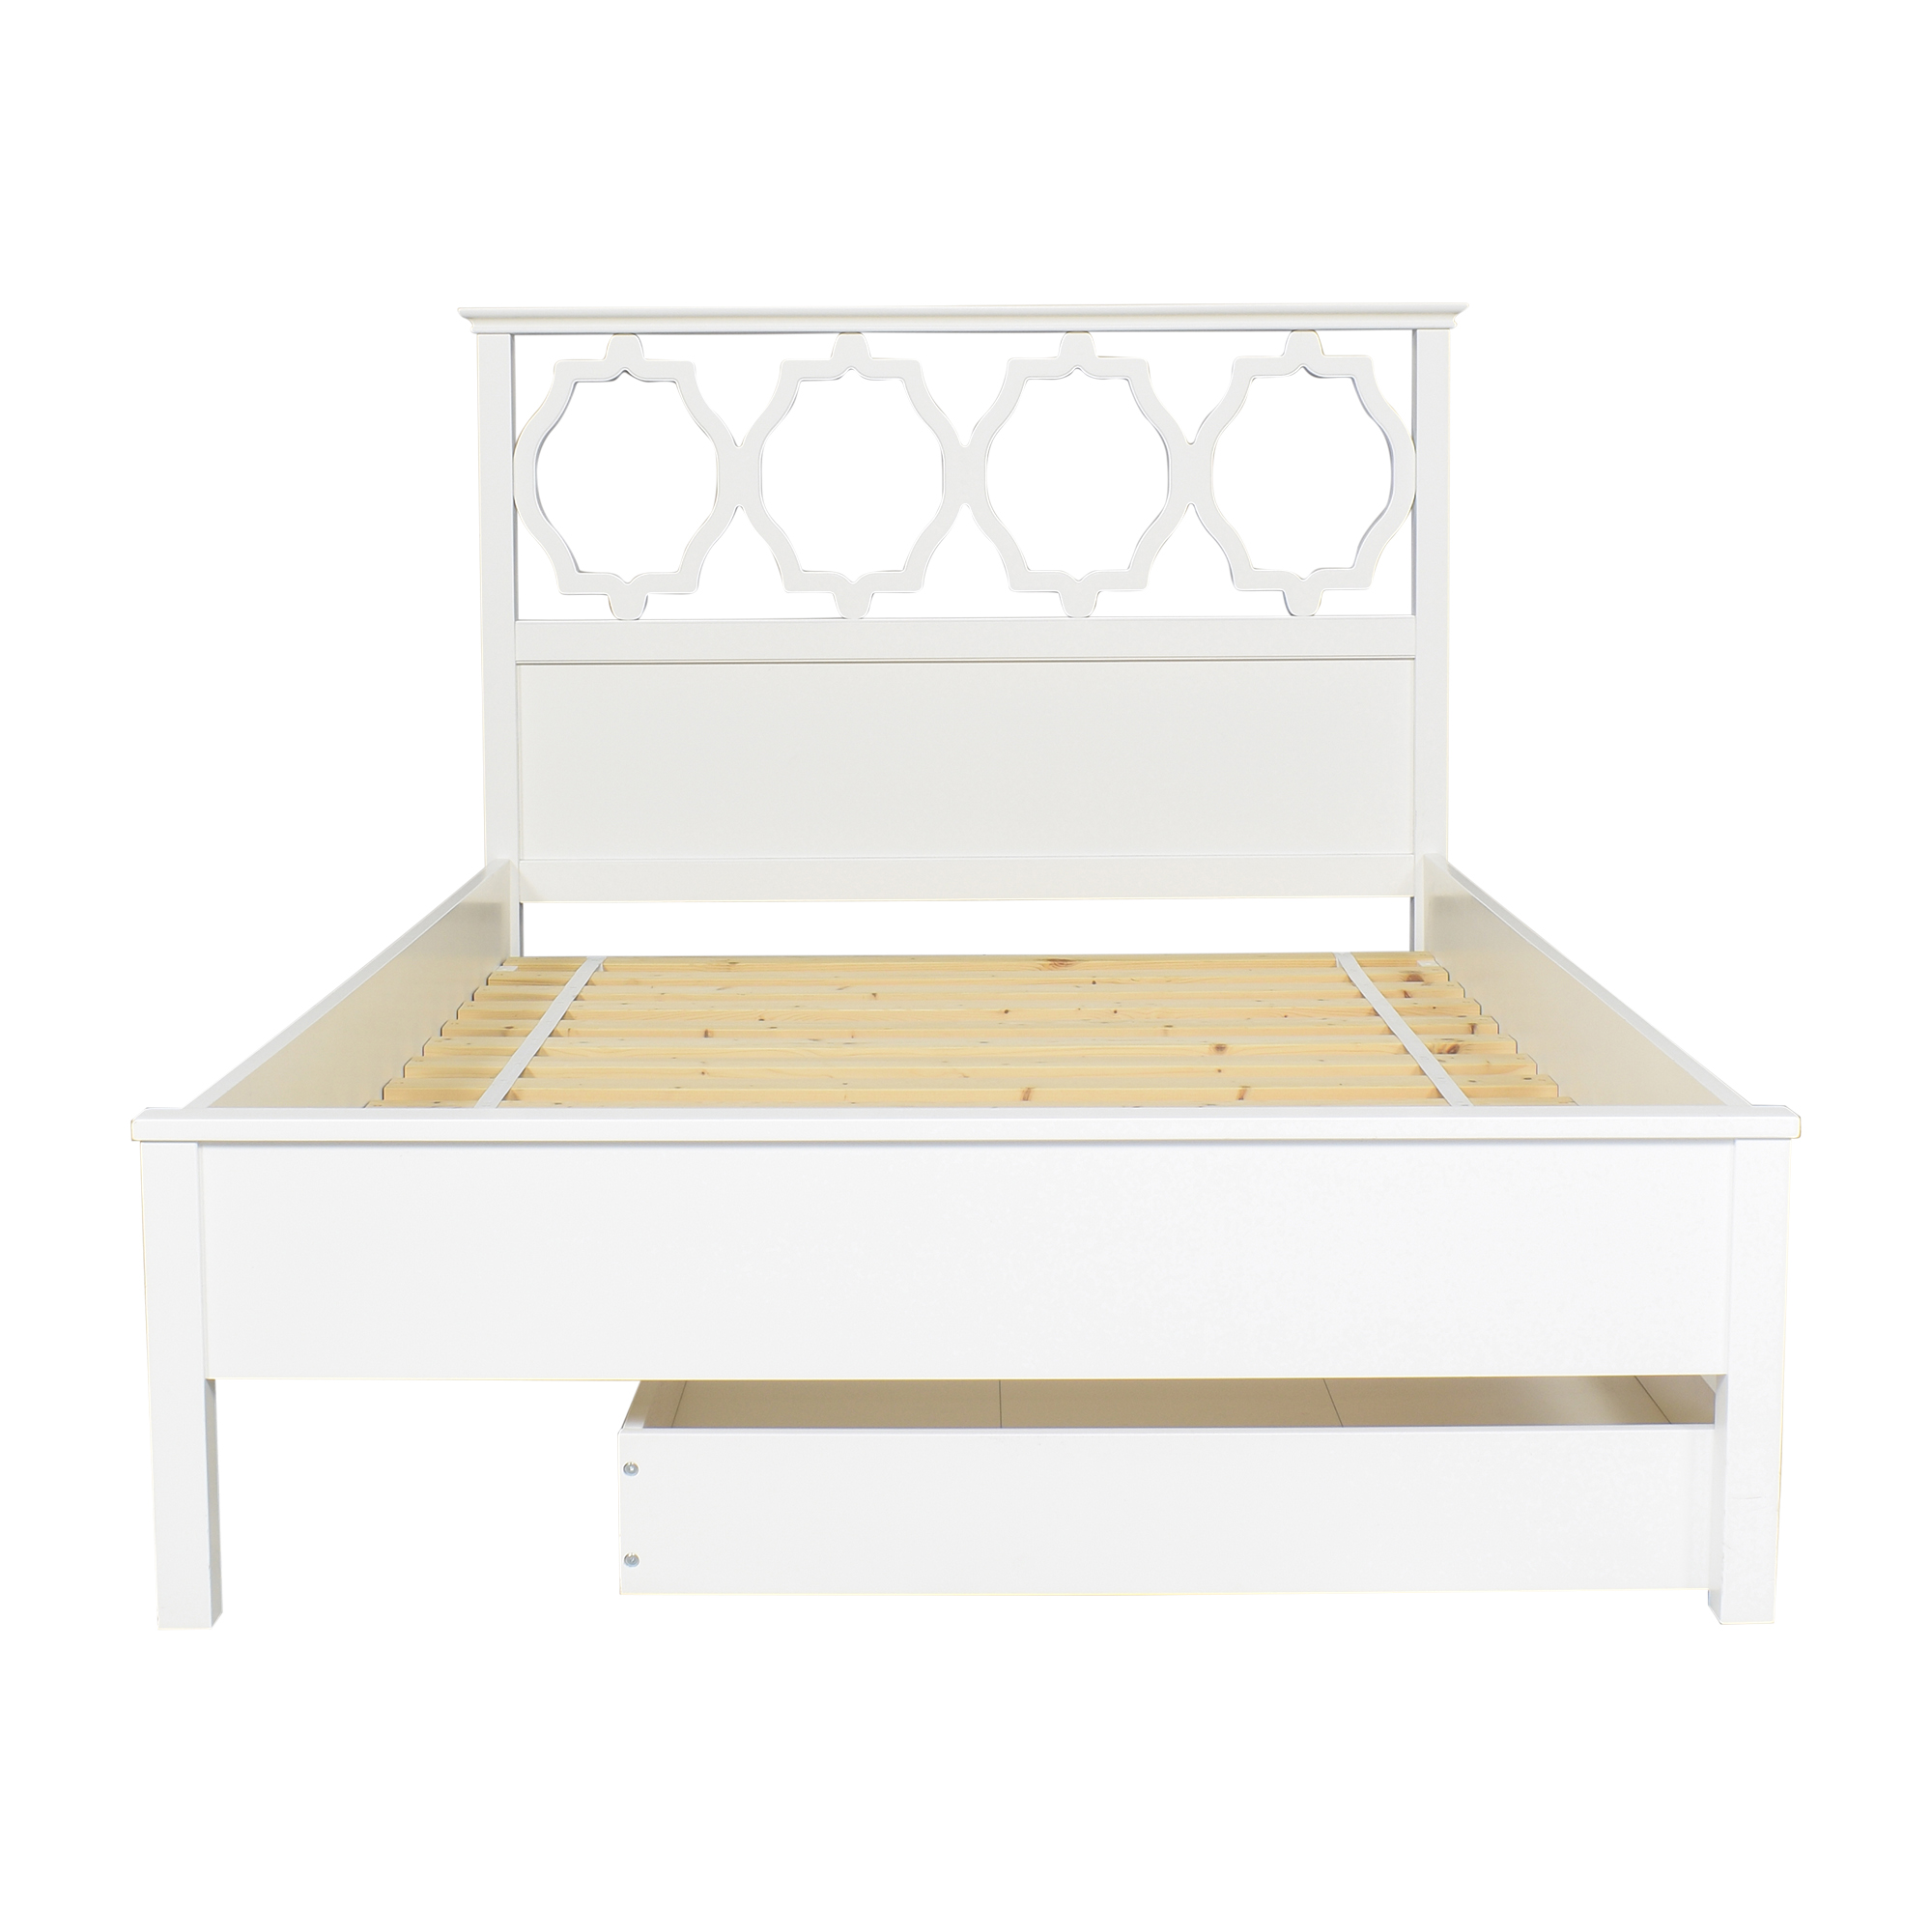 Pottery Barn Teen Pottery Barn Teen Elsie Full Bed with Trundle nj